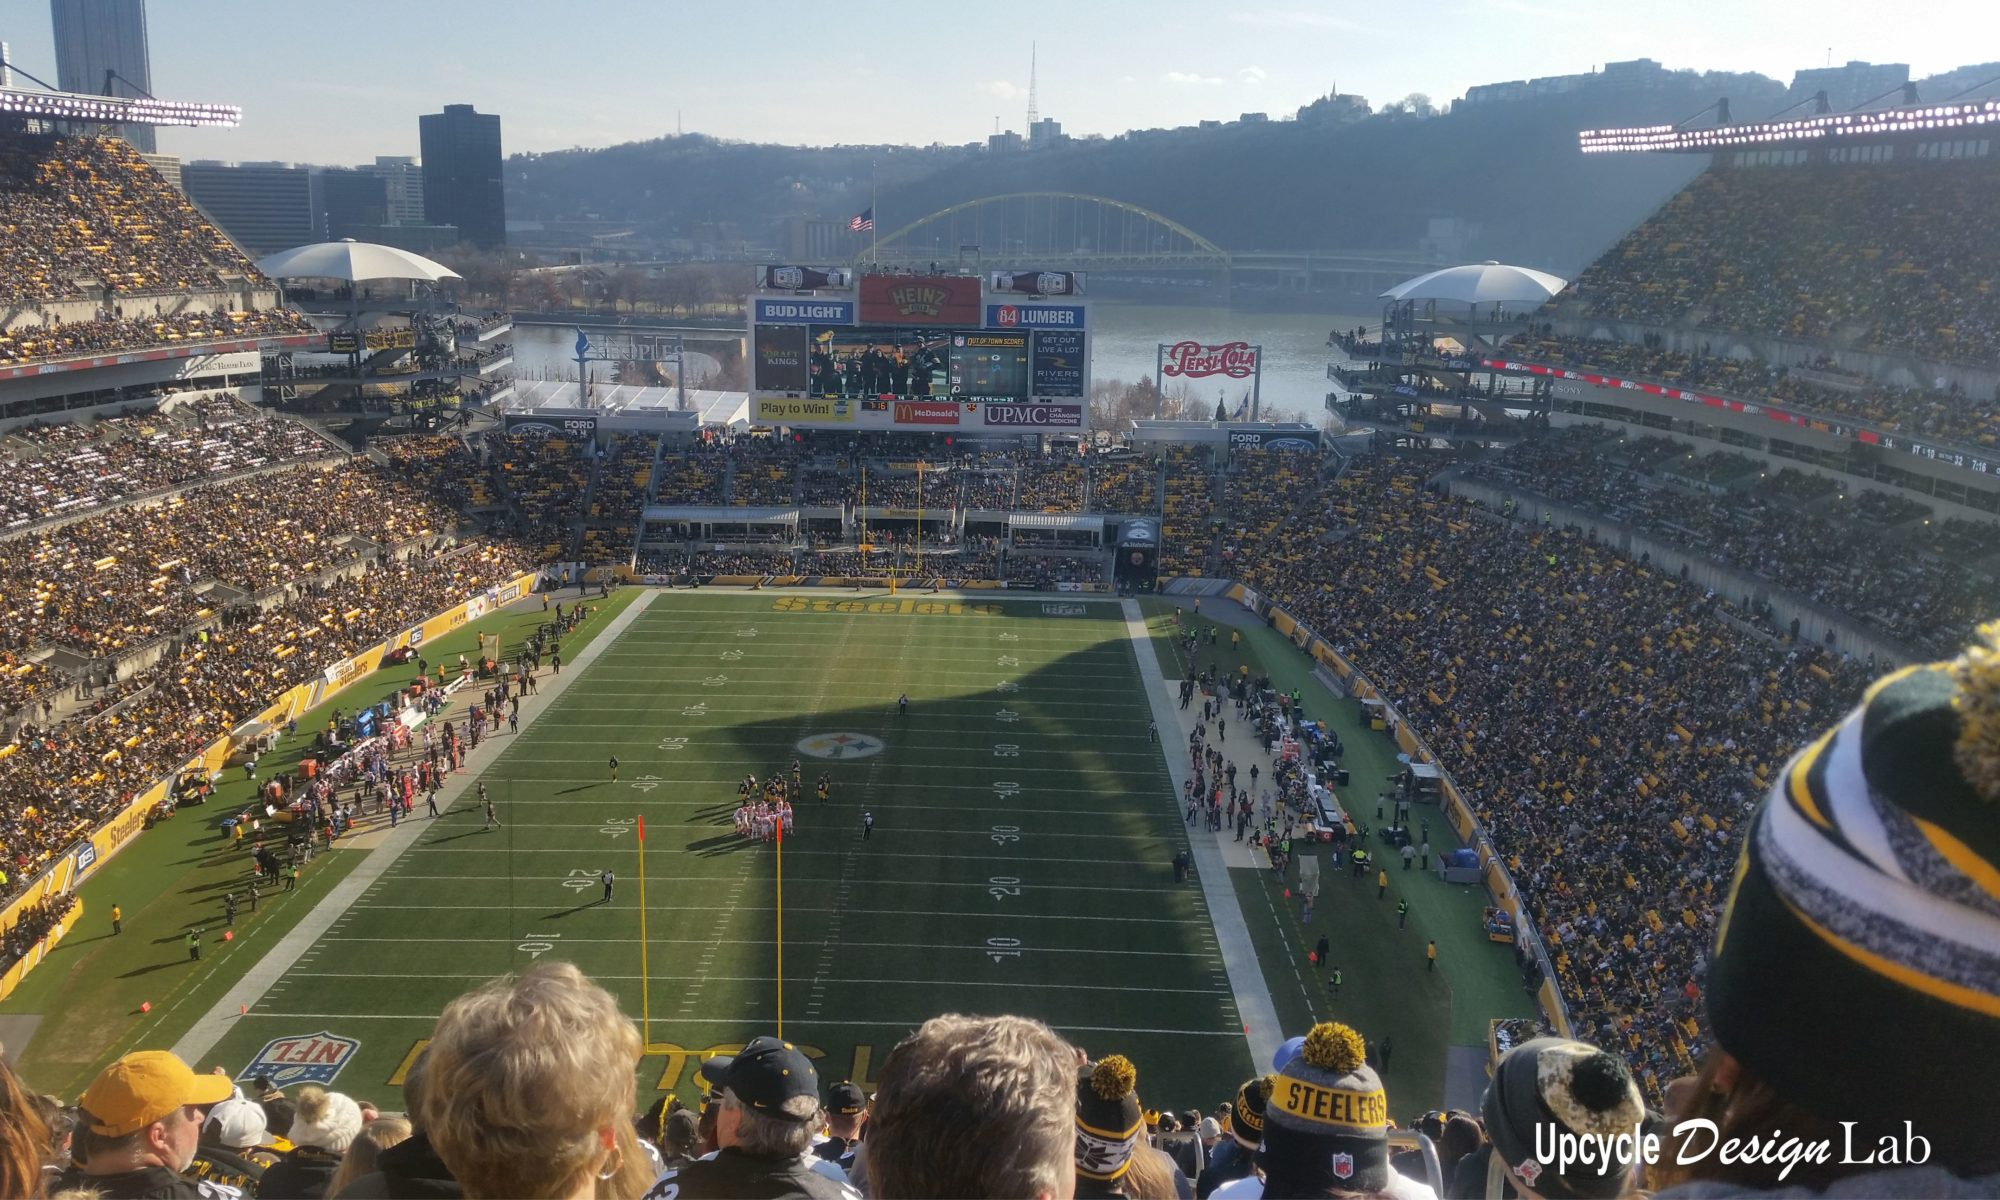 Game day at Heinz Field January 1, 2017